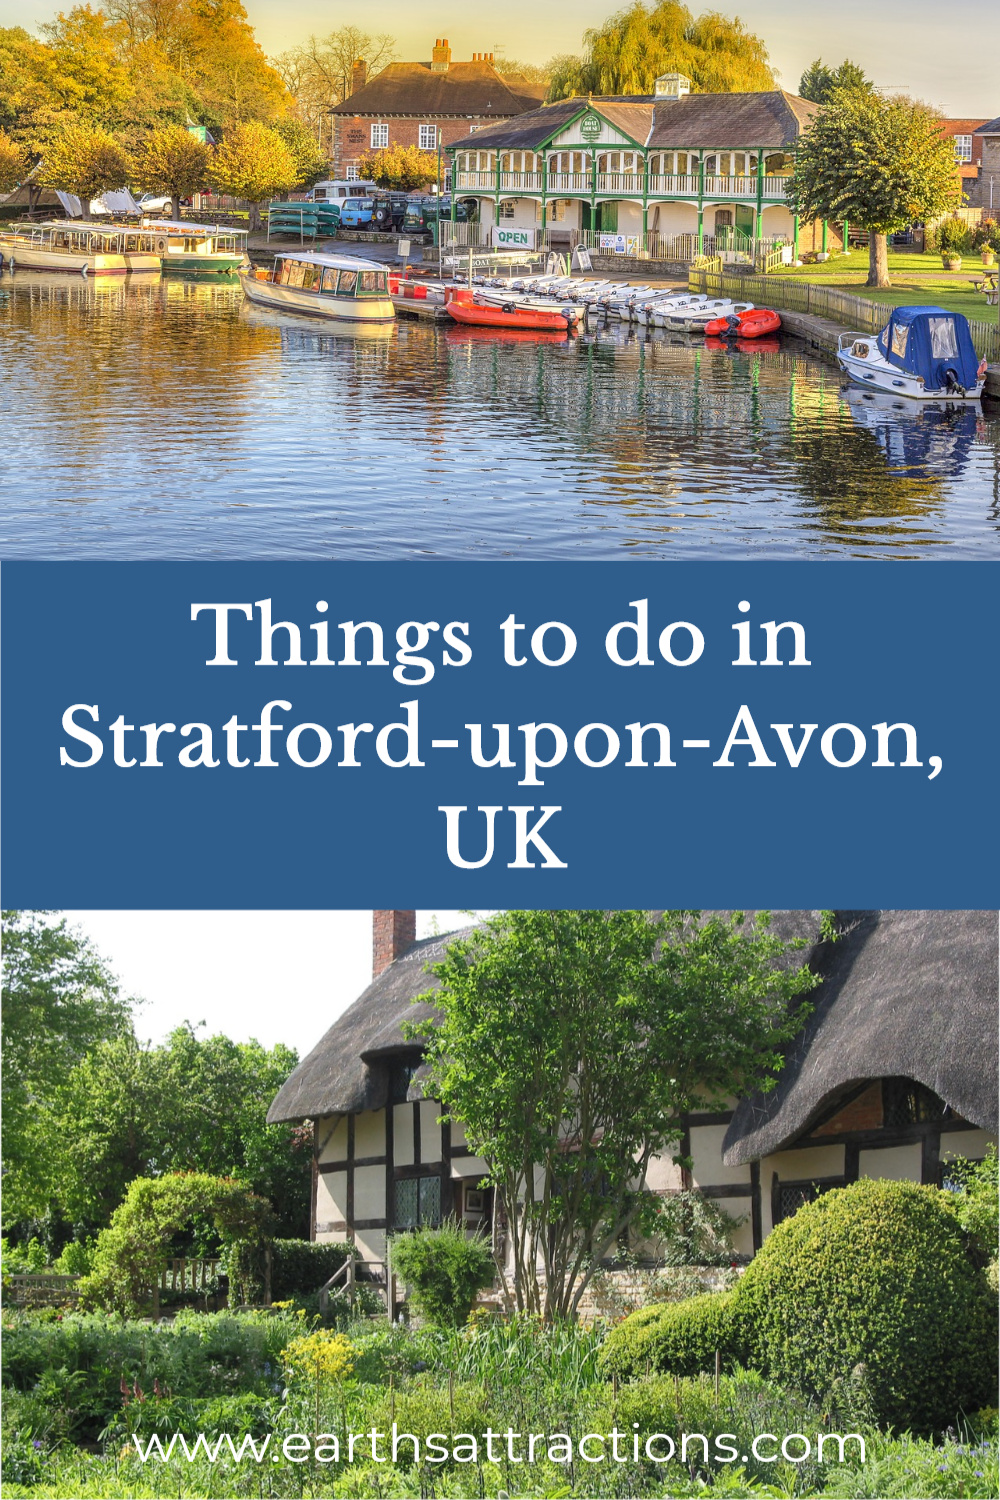 Wonderful Things to Do in Stratford-upon-Avon, England. Read this detailed guide to Shakespeare's Birthplace and discover the best things to do in Stratford Upon Avon, including all of the best Shakespeare sites, a cruise down the river, and off the beaten path Stratford-upon-Avon attractions. Restaurants, tips, and more included to help you plan the best trip to Stratford-upon-Avon. Read this article now and save this pin to your board #stratford #stratforduponavon #uk #warwickshire #uktravel #europetravel #travelguides #traveldestination #smalltown #smalltowntravel #earthsattractions